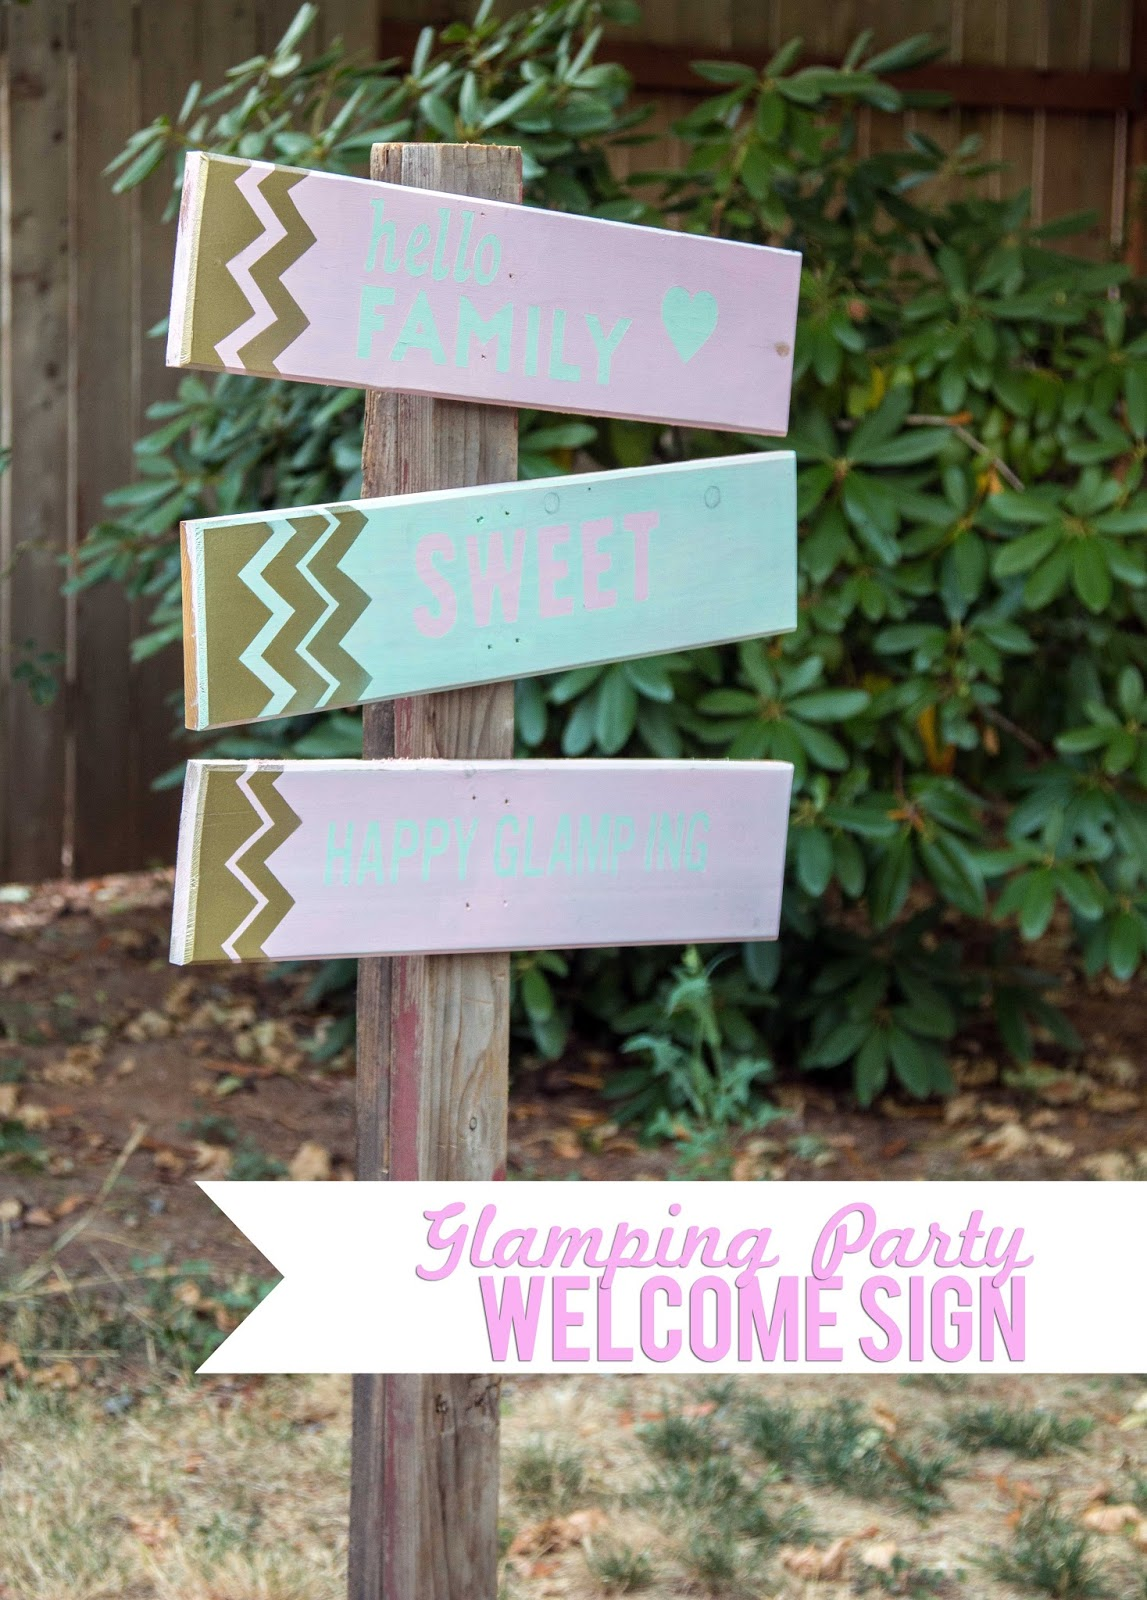 Glamping Party Welcome Sign @craftsavvy @createoften #craftwarehouse #glamping #party #diy